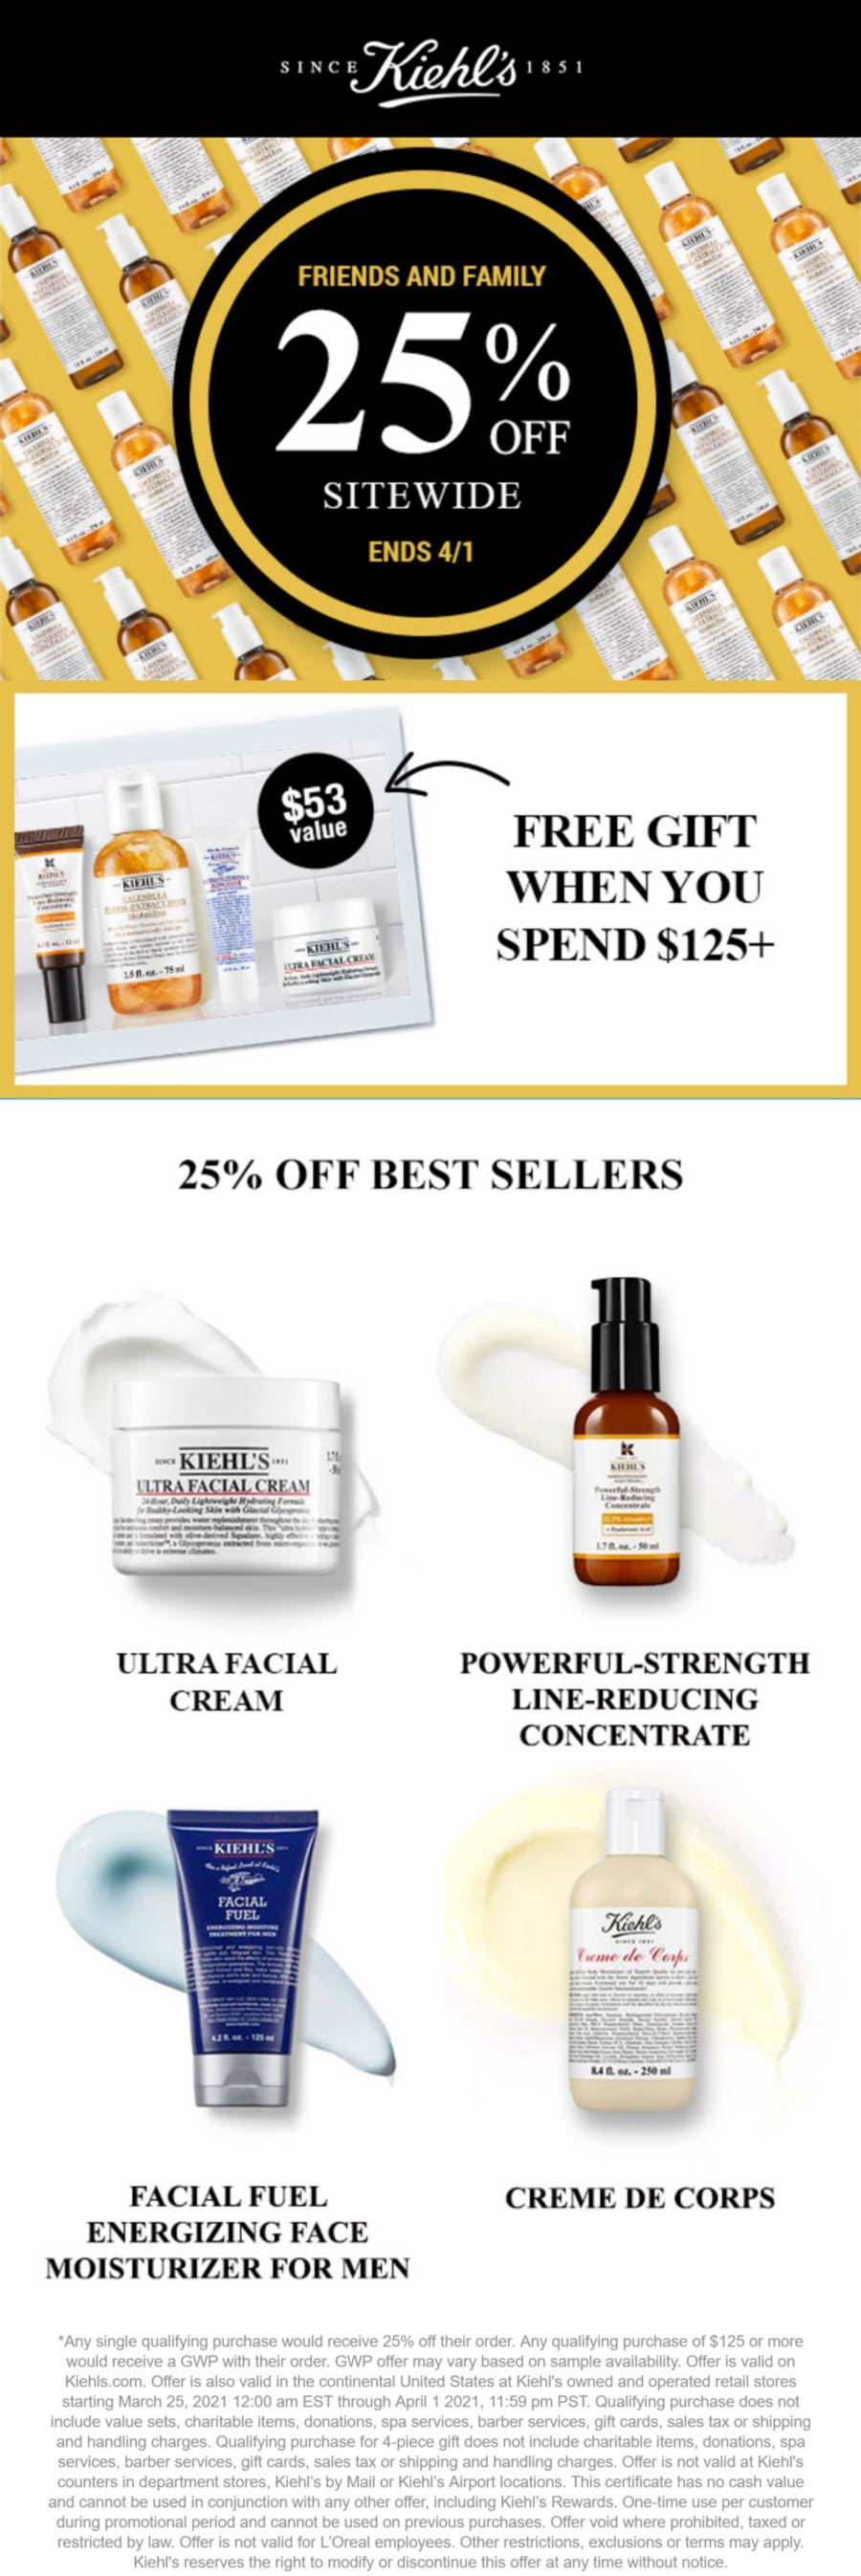 Kiehls stores Coupon  25% off at Kiehls skincare, ditto online #kiehls